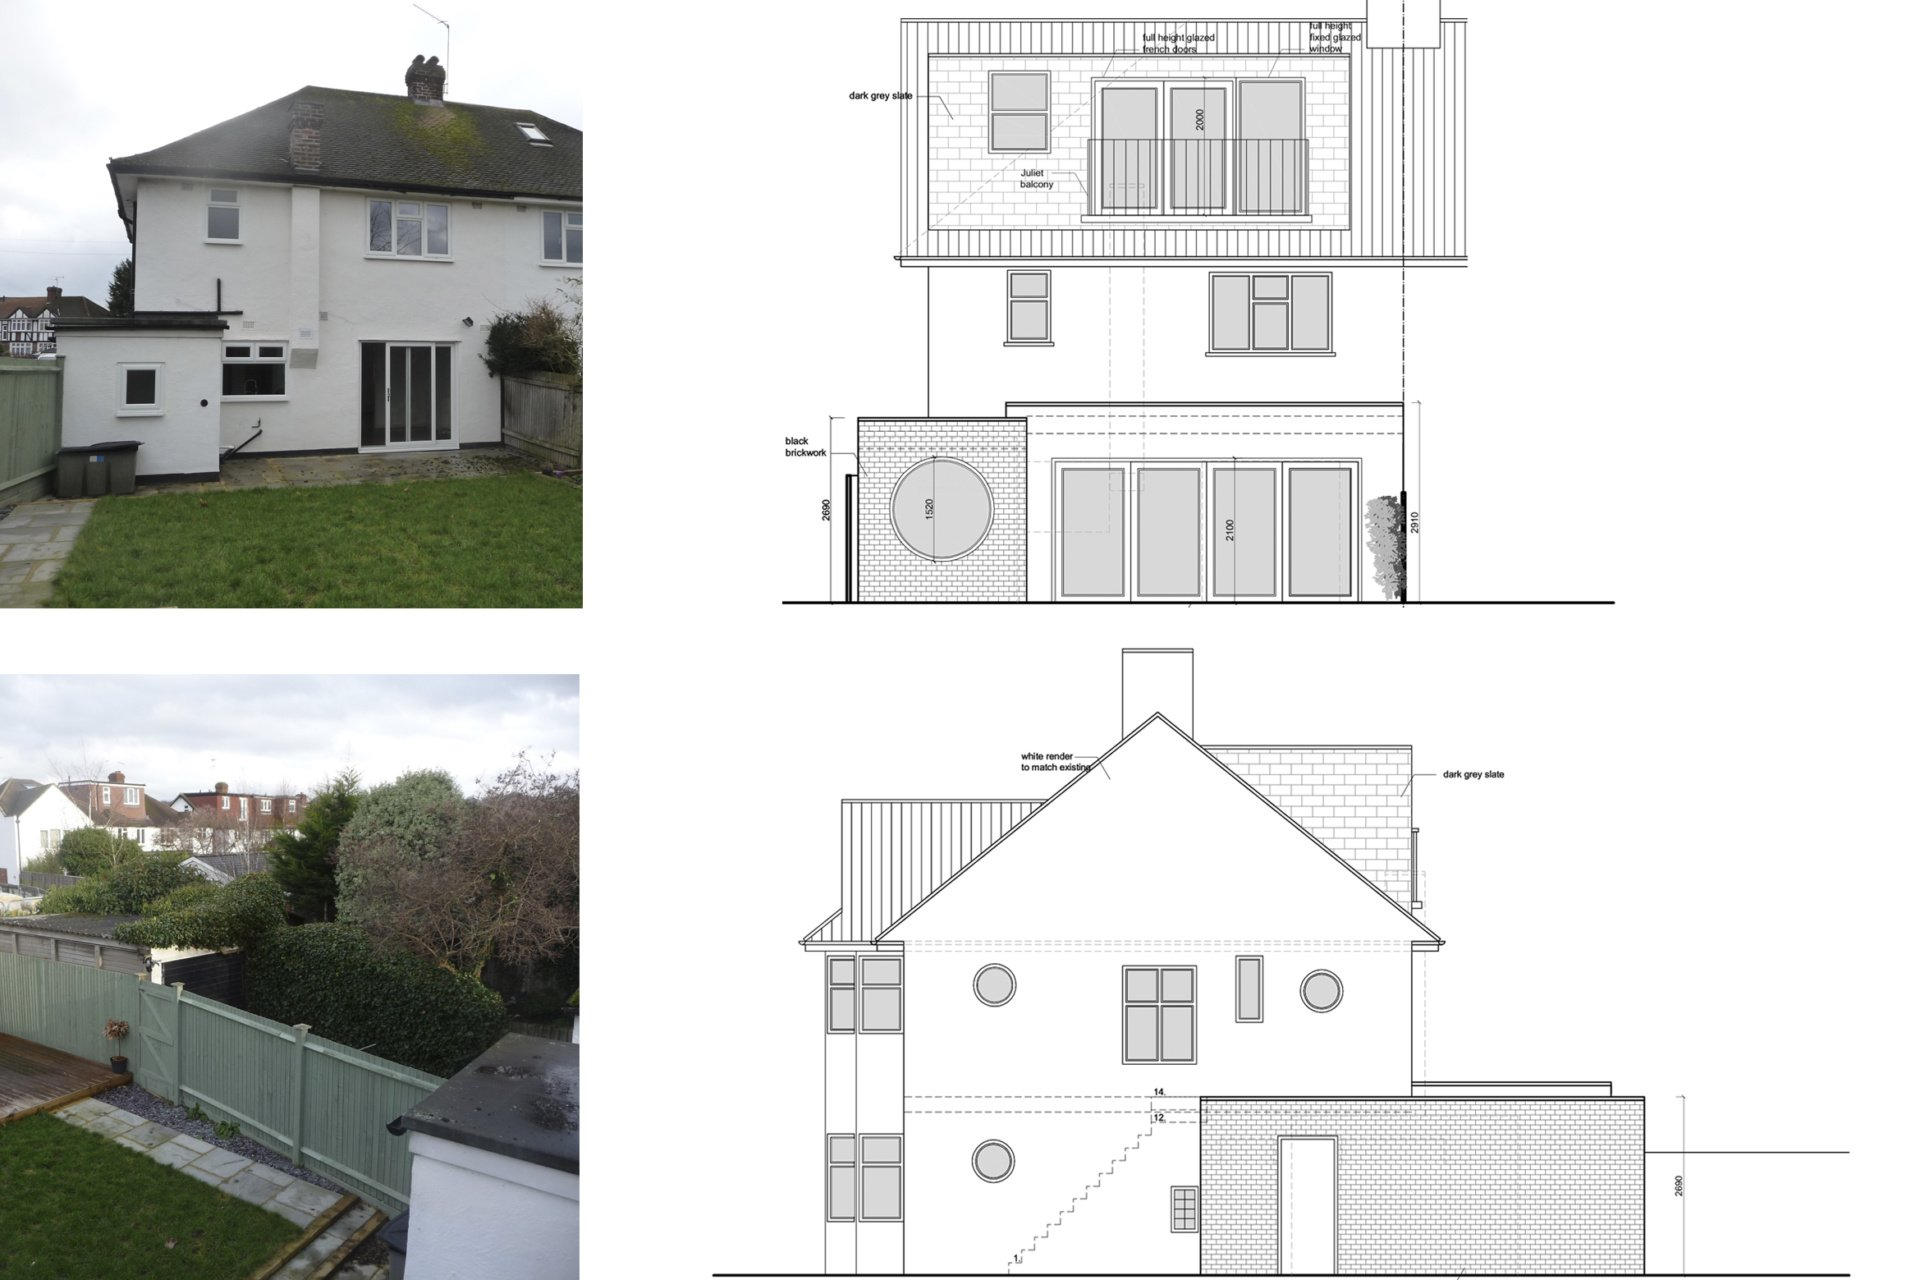 Architect designed roof and kitchen house extension Kingston KT2 Elevations 1 Kingston KT2 | Roof and kitchen house extension